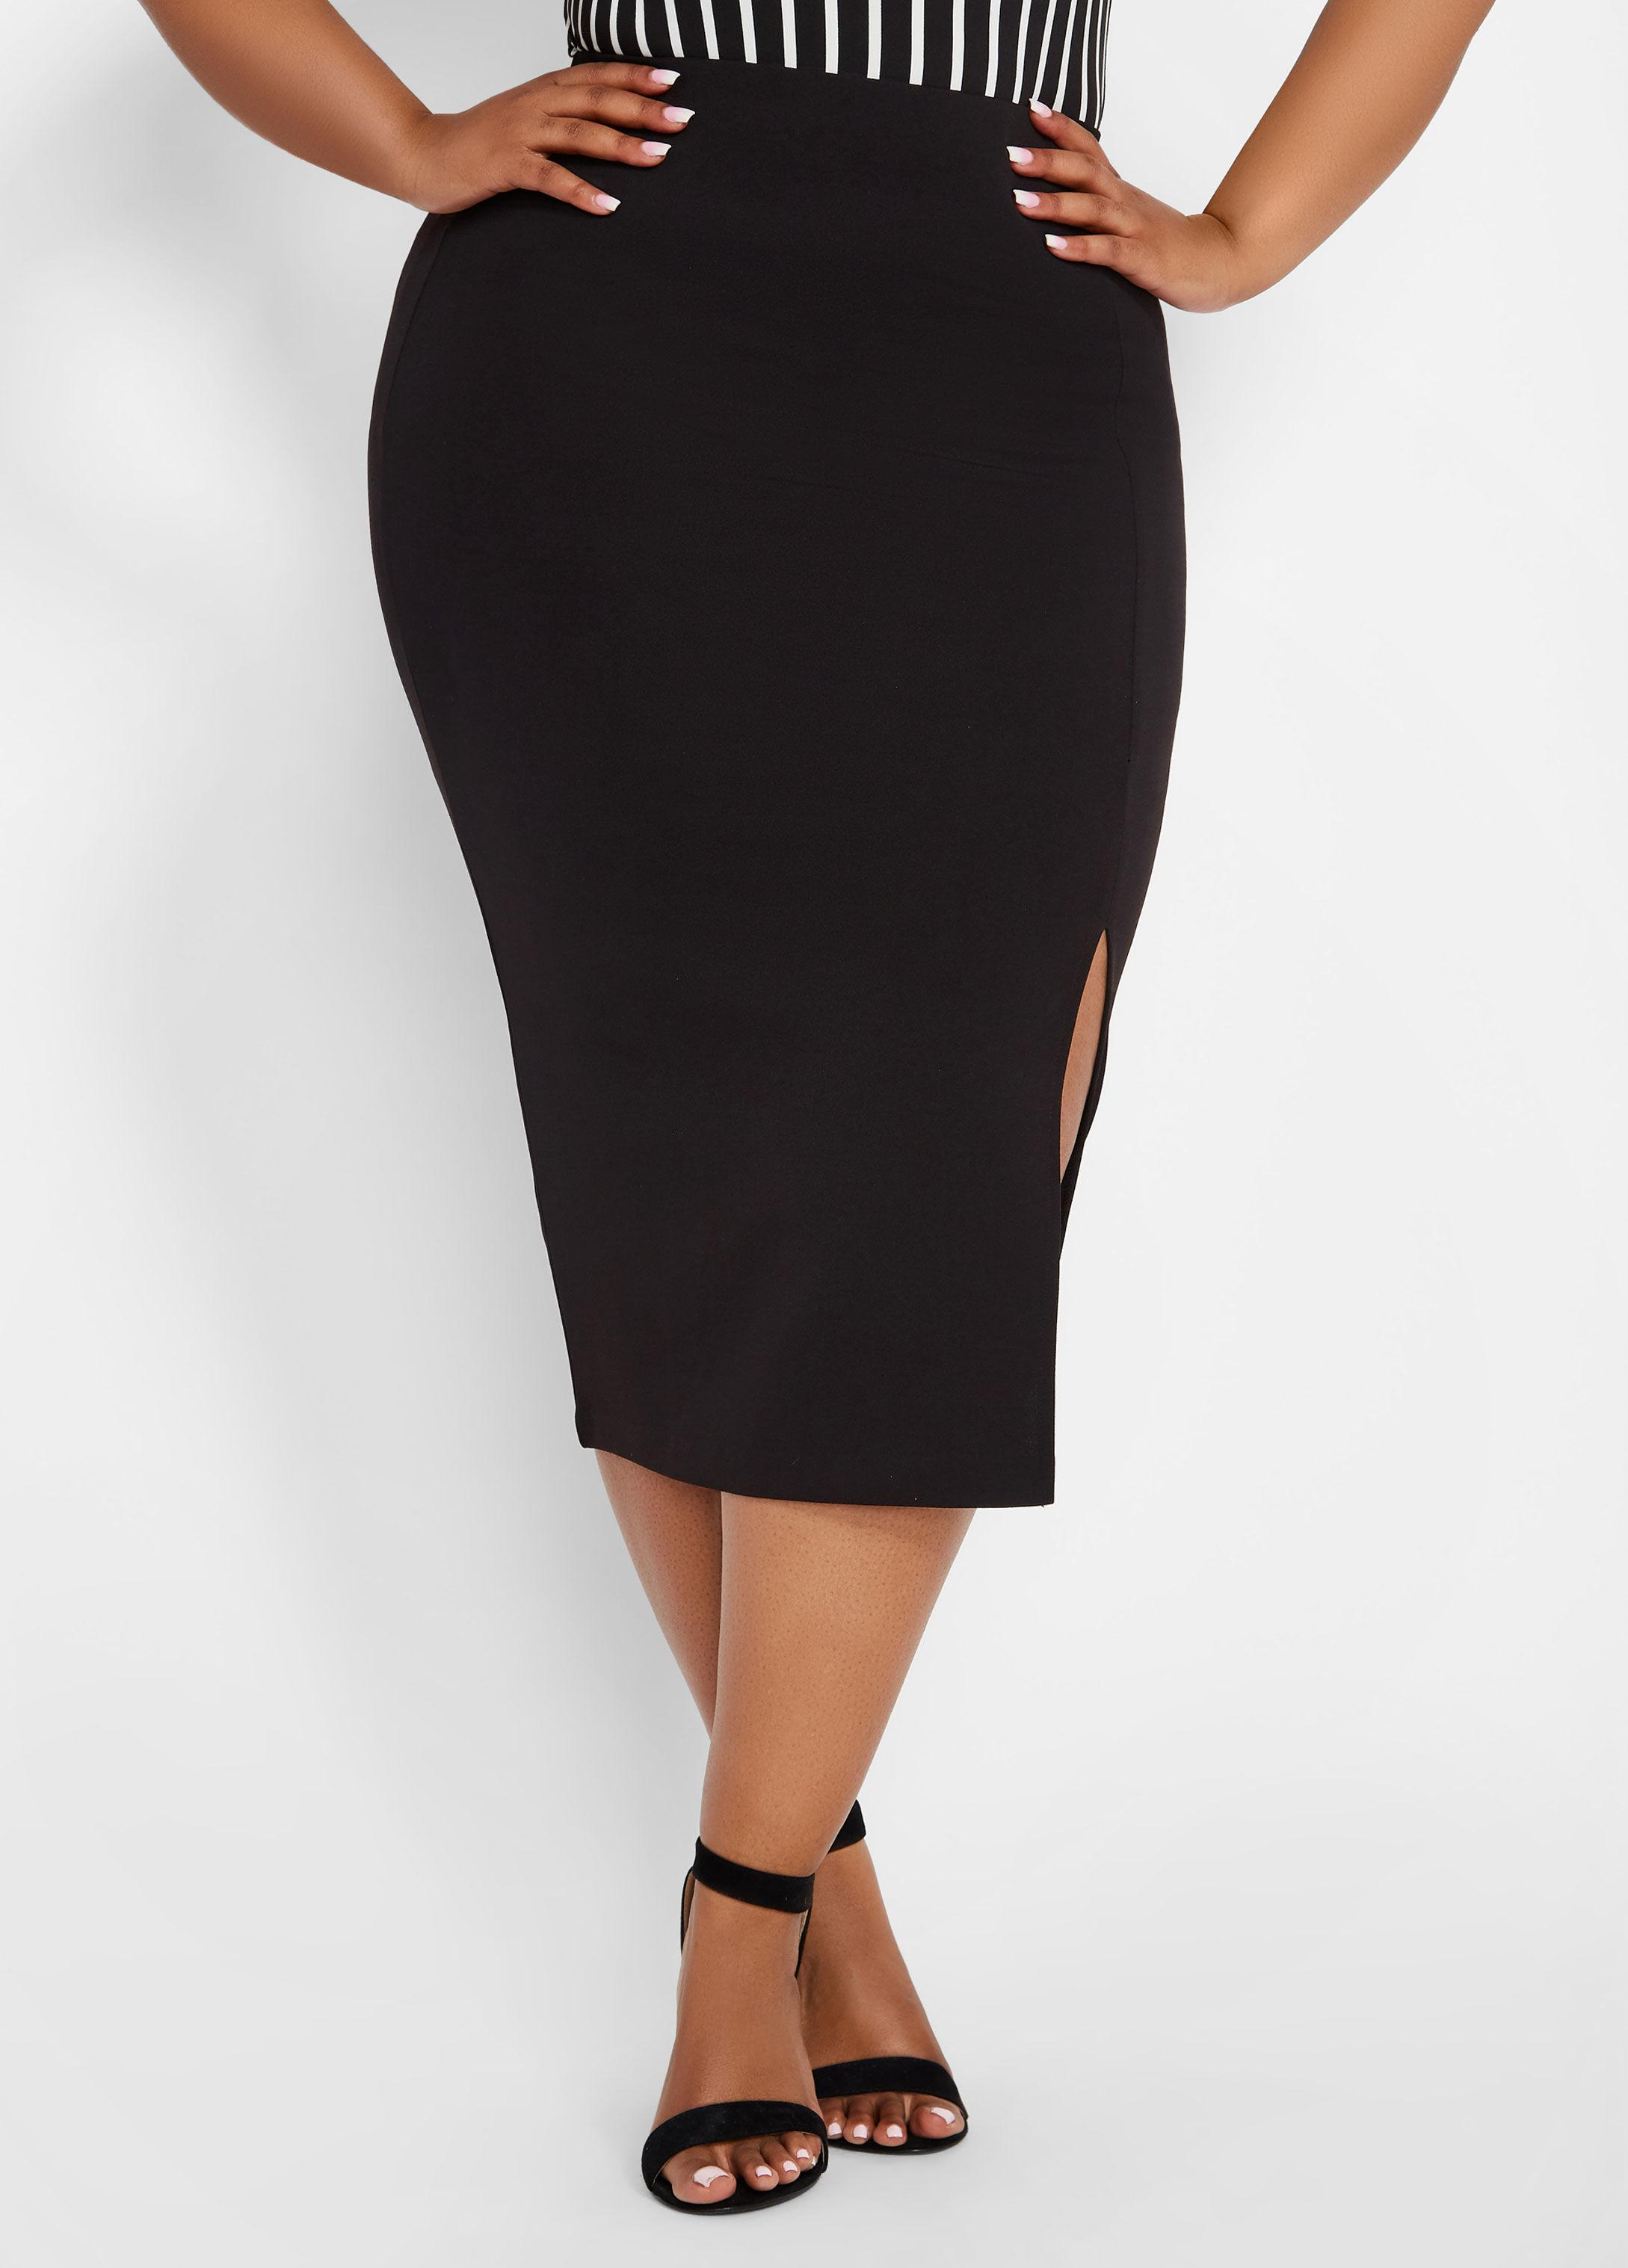 a542cb9535 Lyst - Ashley Stewart Plus Size Crepe Pencil Skirt in Black